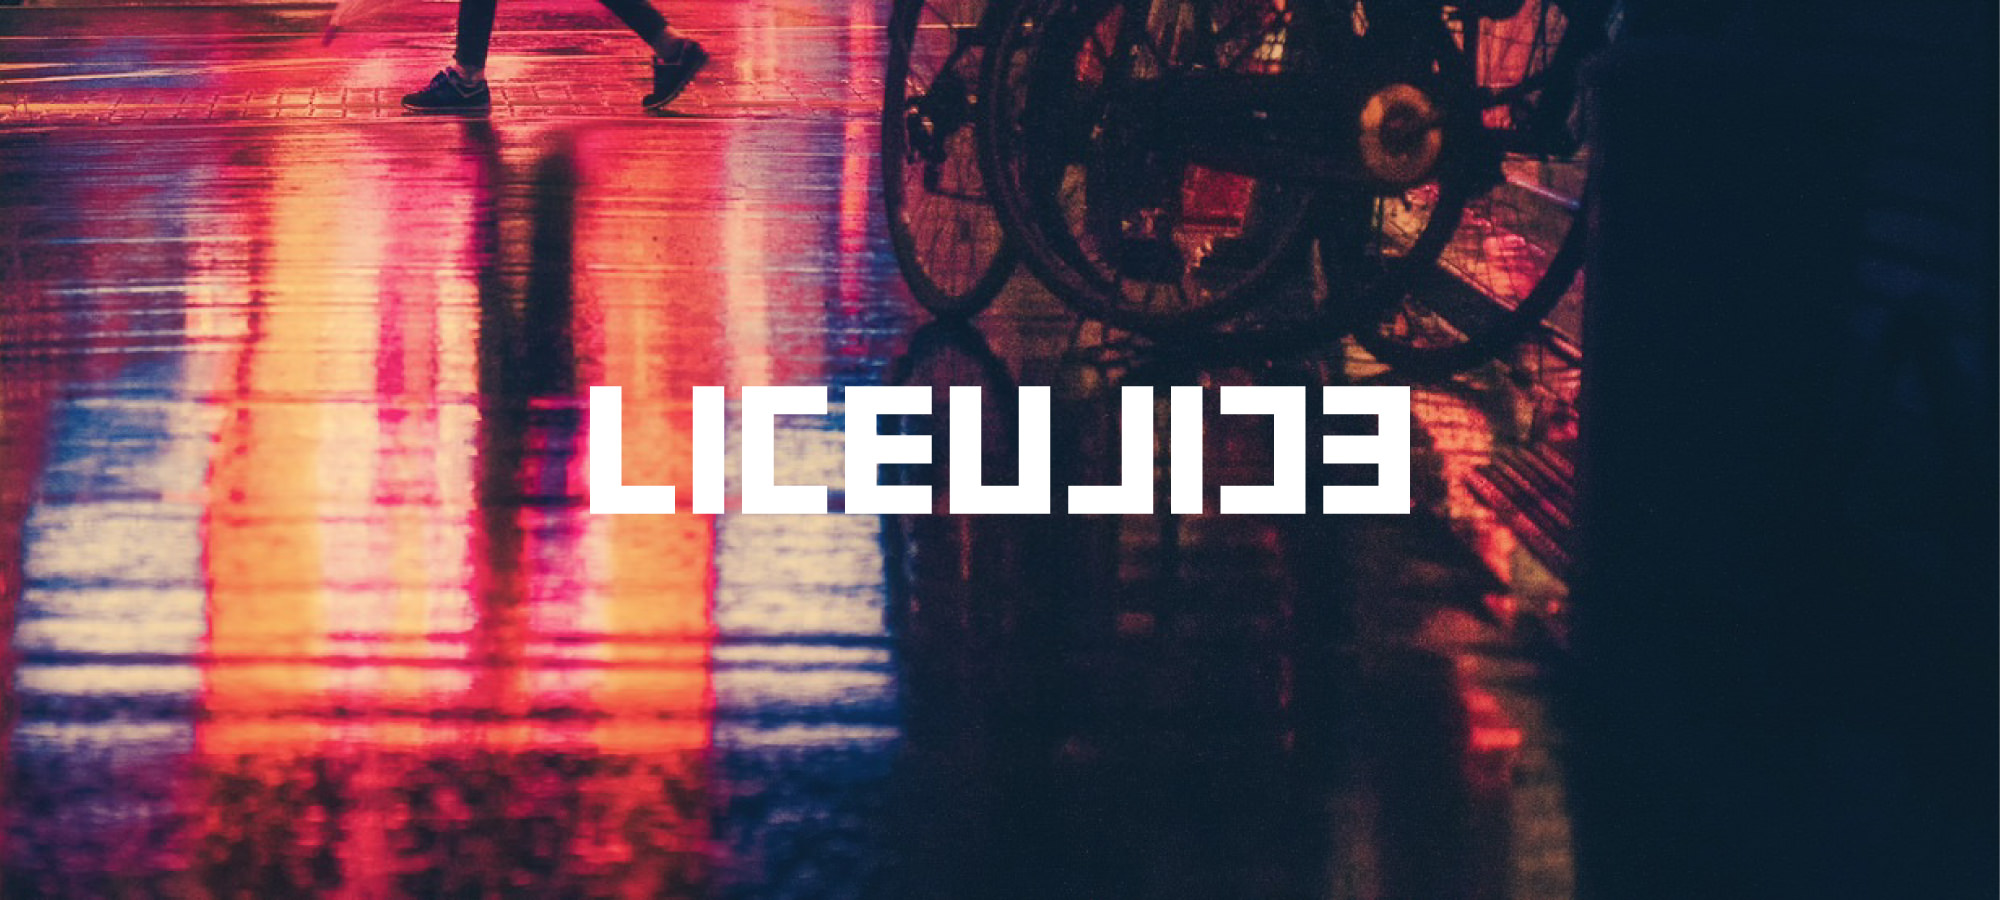 liceulice header-100